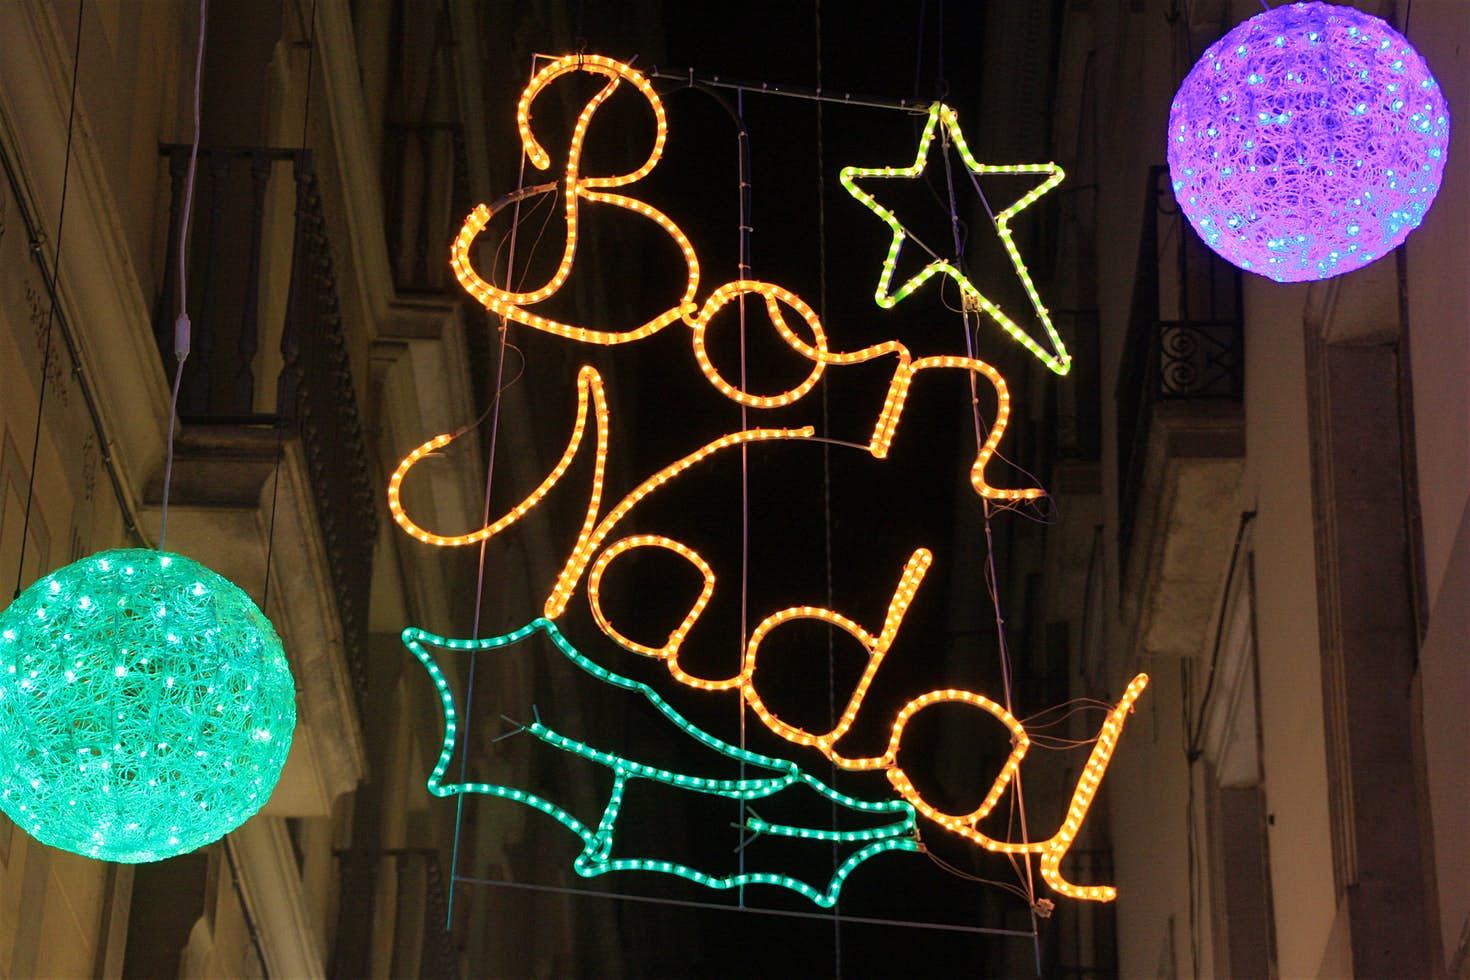 Festive lights on the Carrer Montsió. Image by Núria / CC BY-SA 2.0